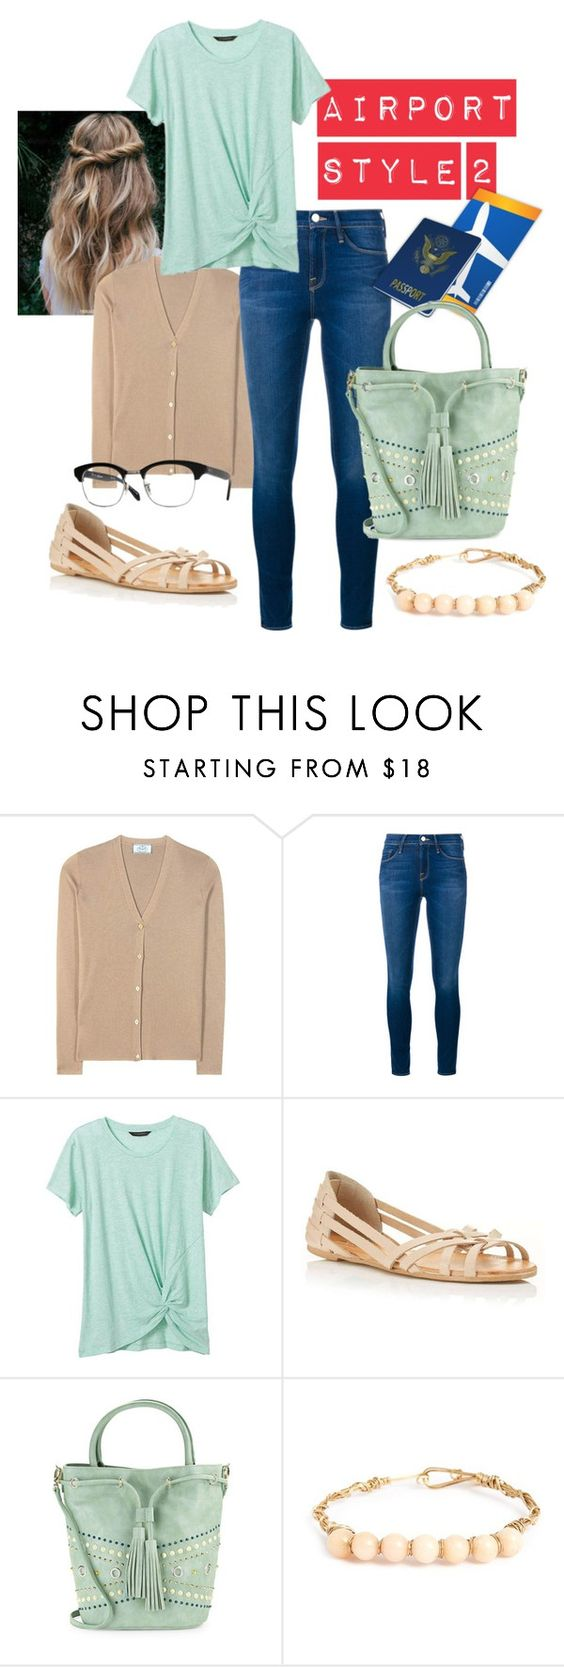 """""""Airport style 2"""" by mfcastillo98 ❤ liked on Polyvore featuring Prada, Frame Denim, Banana Republic, Miss Selfridge, Vanity Fair and Steven by Steve Madden"""